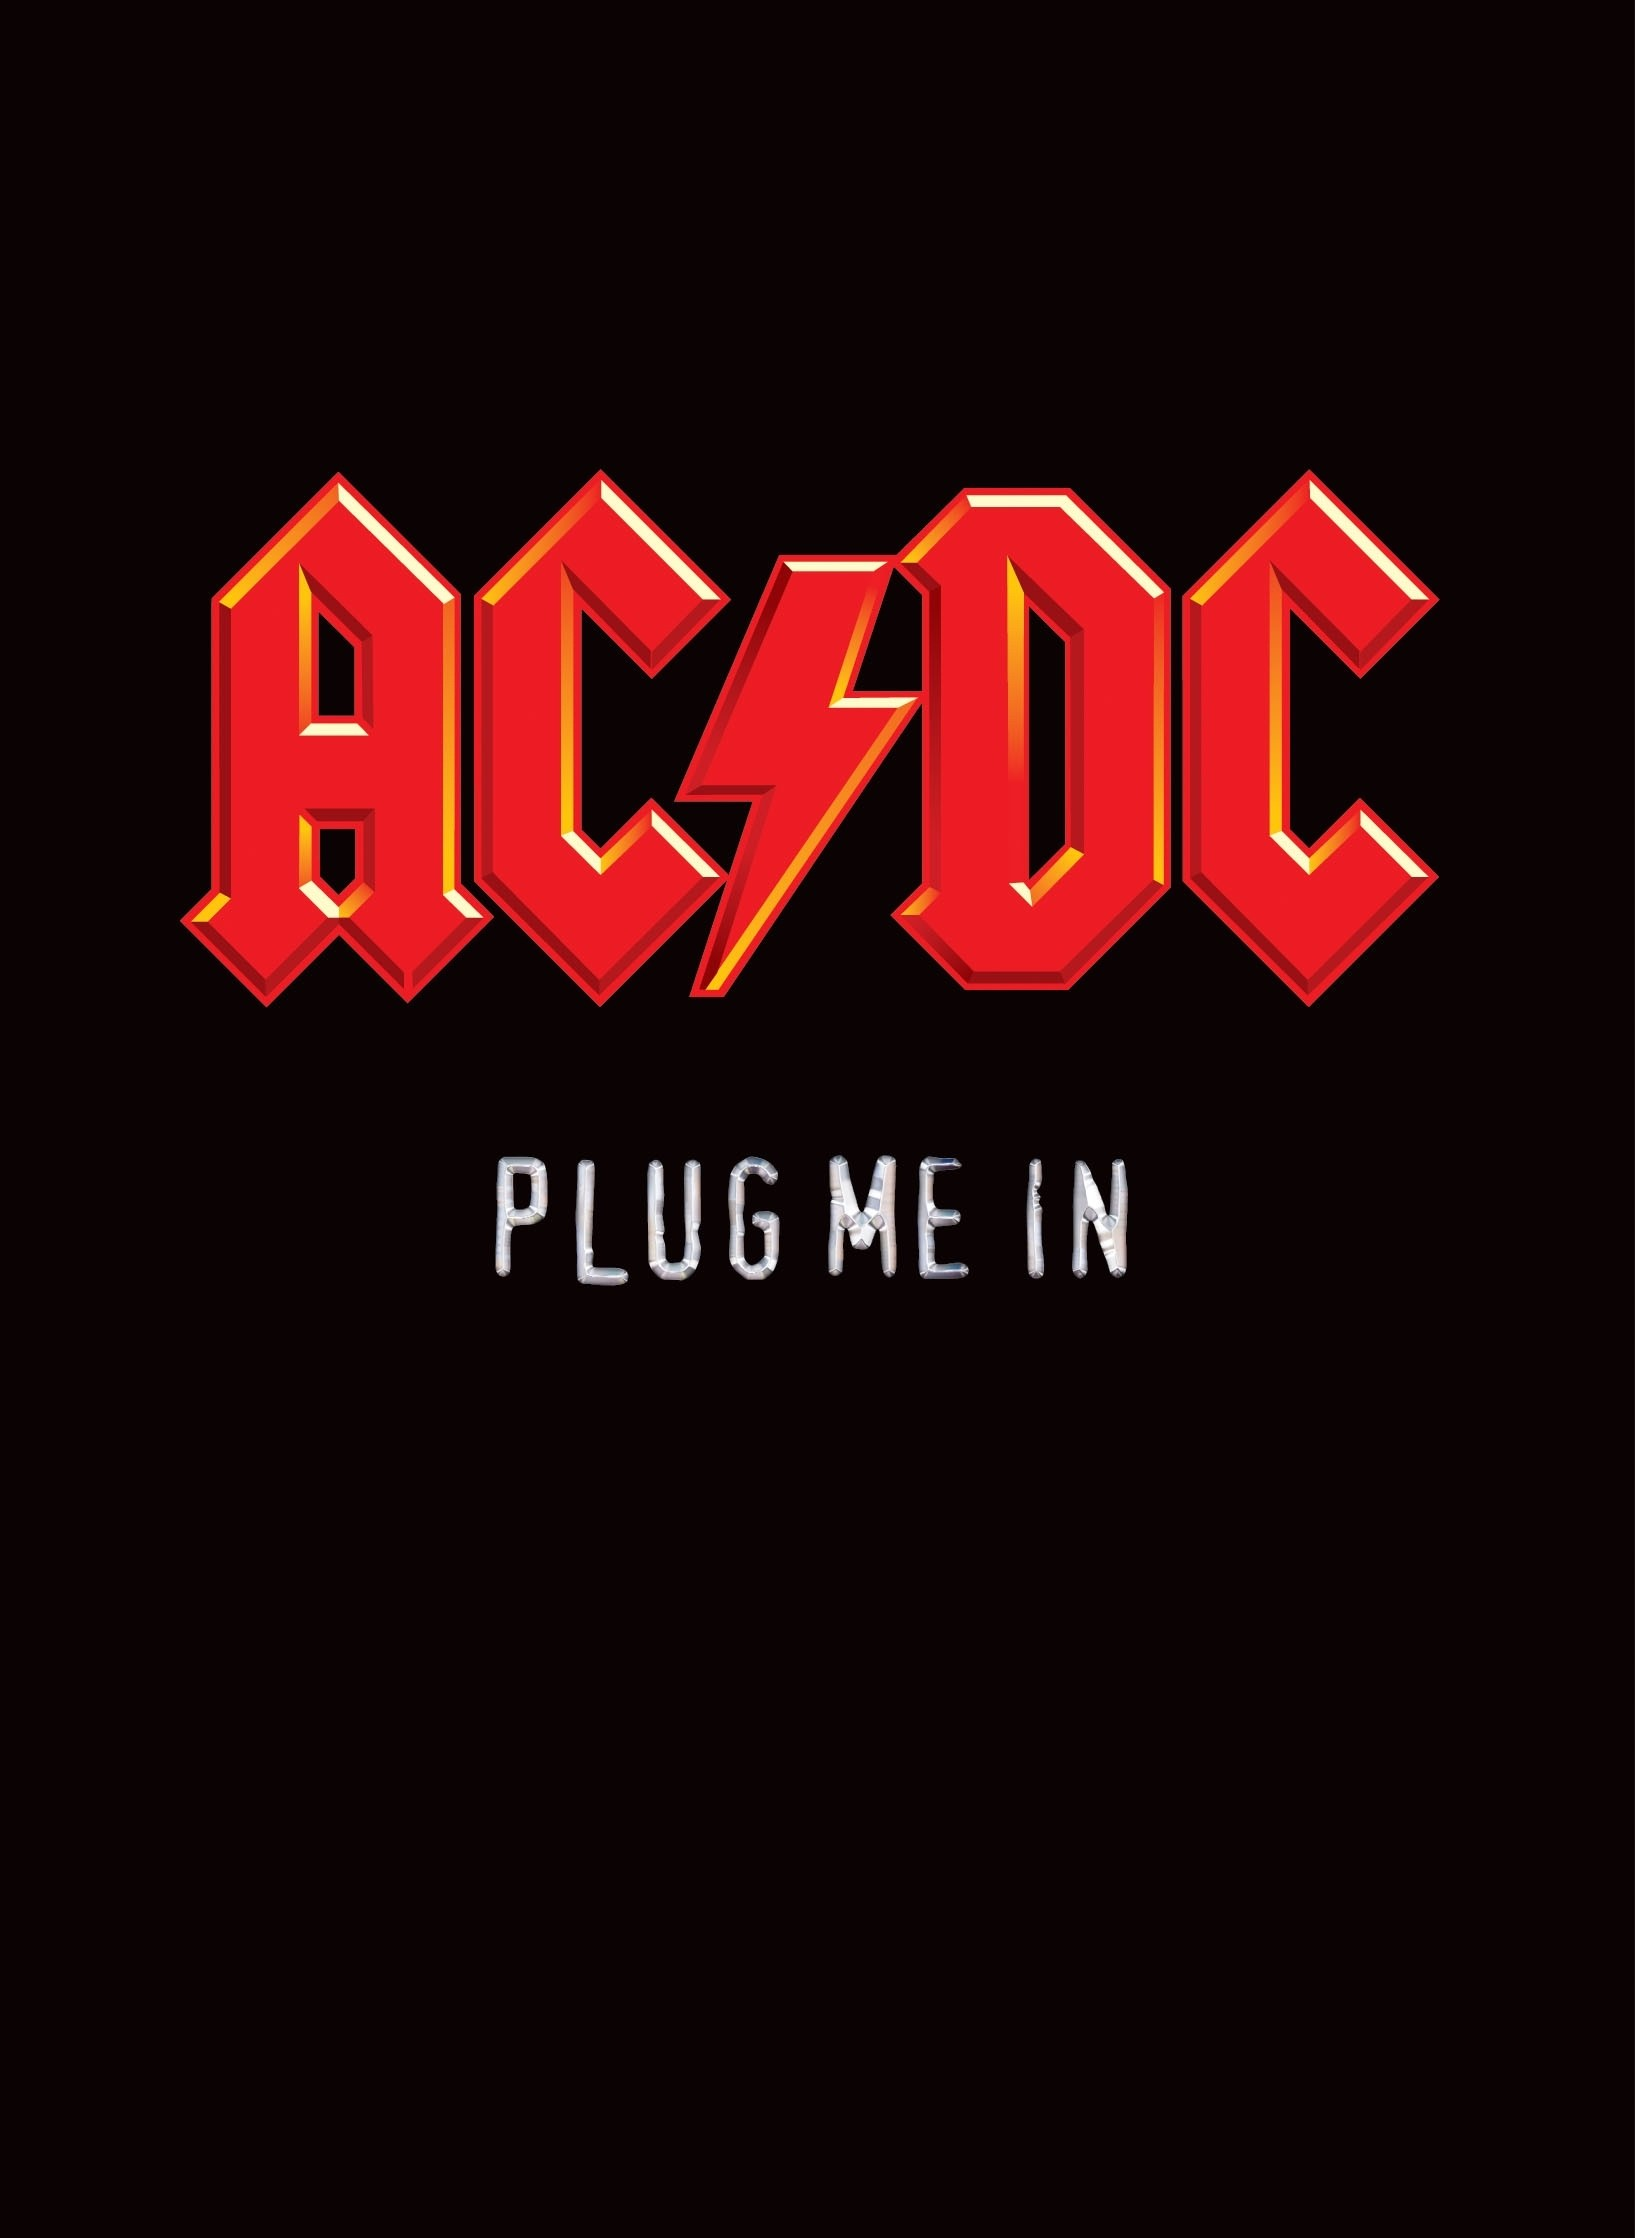 thefunnybone2 Plug Me In Acdc Poster